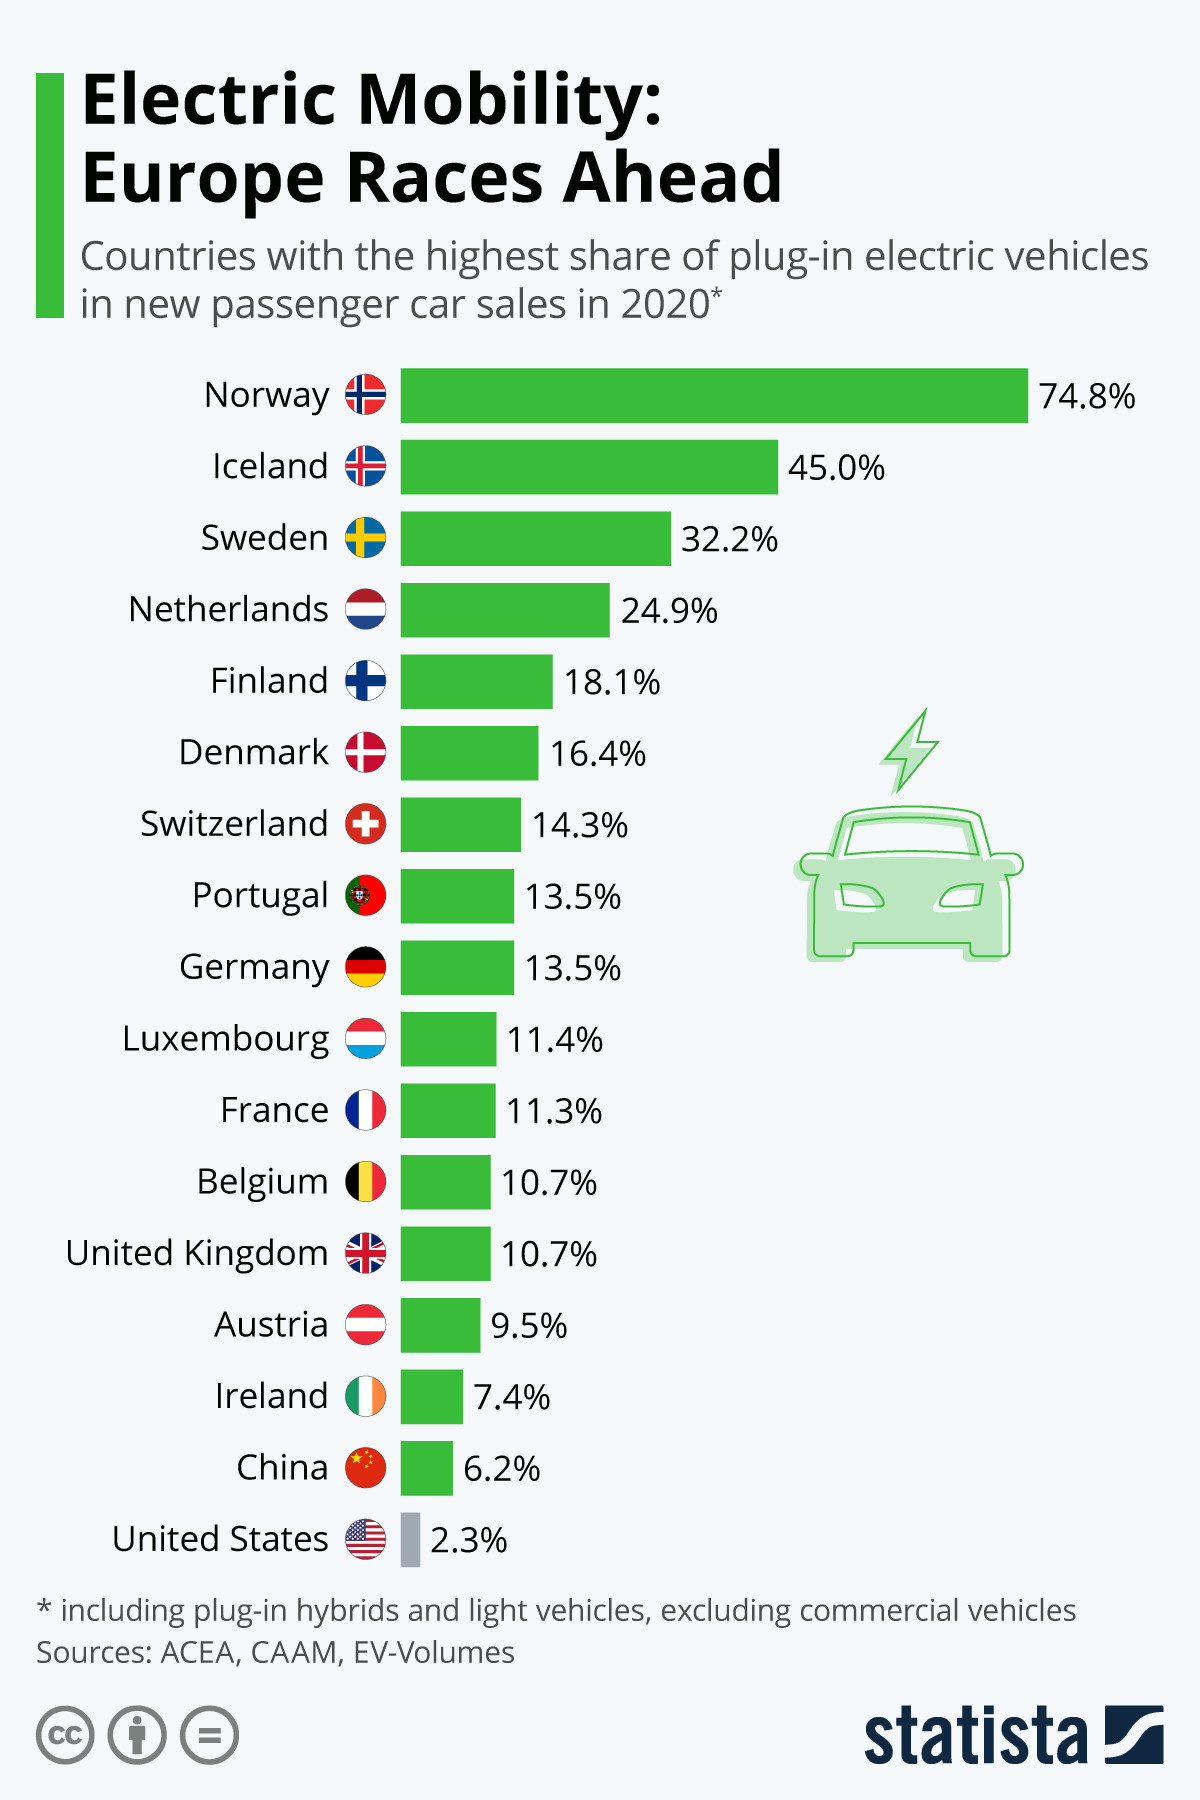 Electric mobility: Europe races ahead